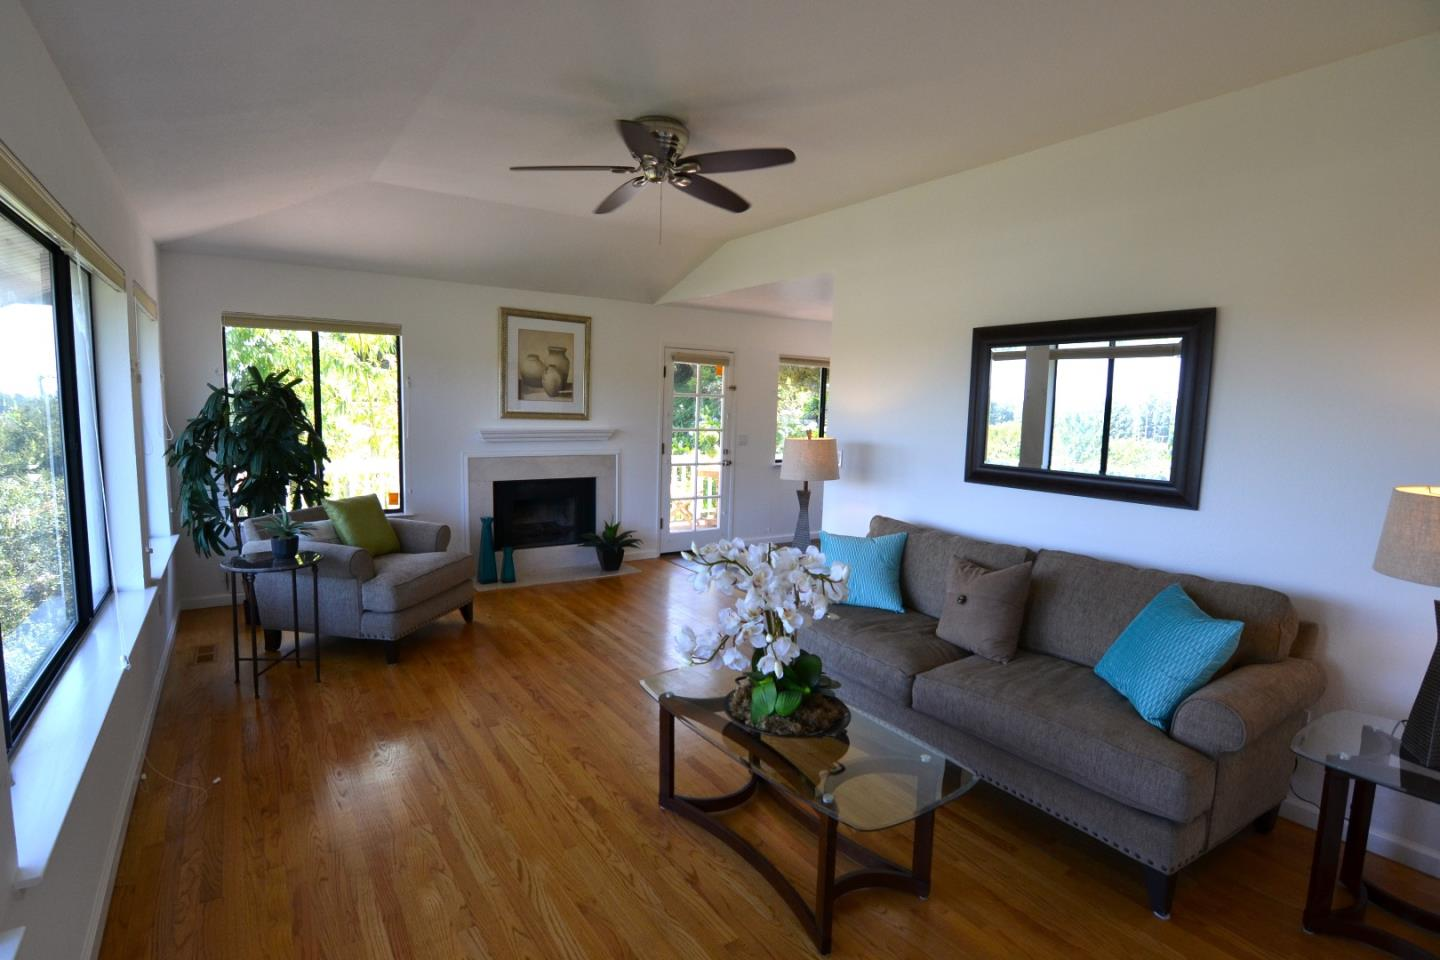 Additional photo for property listing at 921 Matts Court  Los Altos, カリフォルニア 94024 アメリカ合衆国